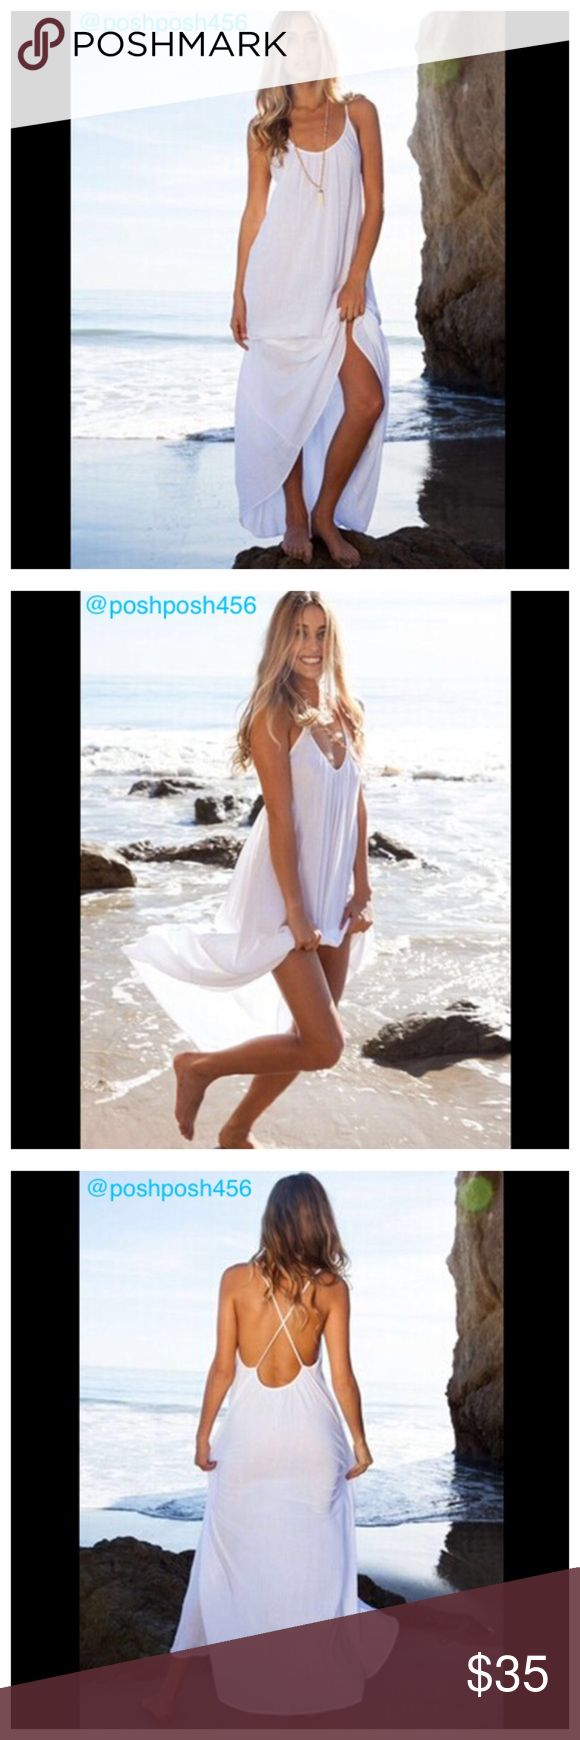 Long white bathing suit cover-up Long white bathing suit cover-up. Material is a bit see through to show off your cute bathing suit.    ✨Size-XL ✨ ✨Material- Chiffon✨ ✨New without tag comes in plastic bag✨ ✨Shipping- one business day Monday through Friday✨ Lee's boutique Swim Coverups